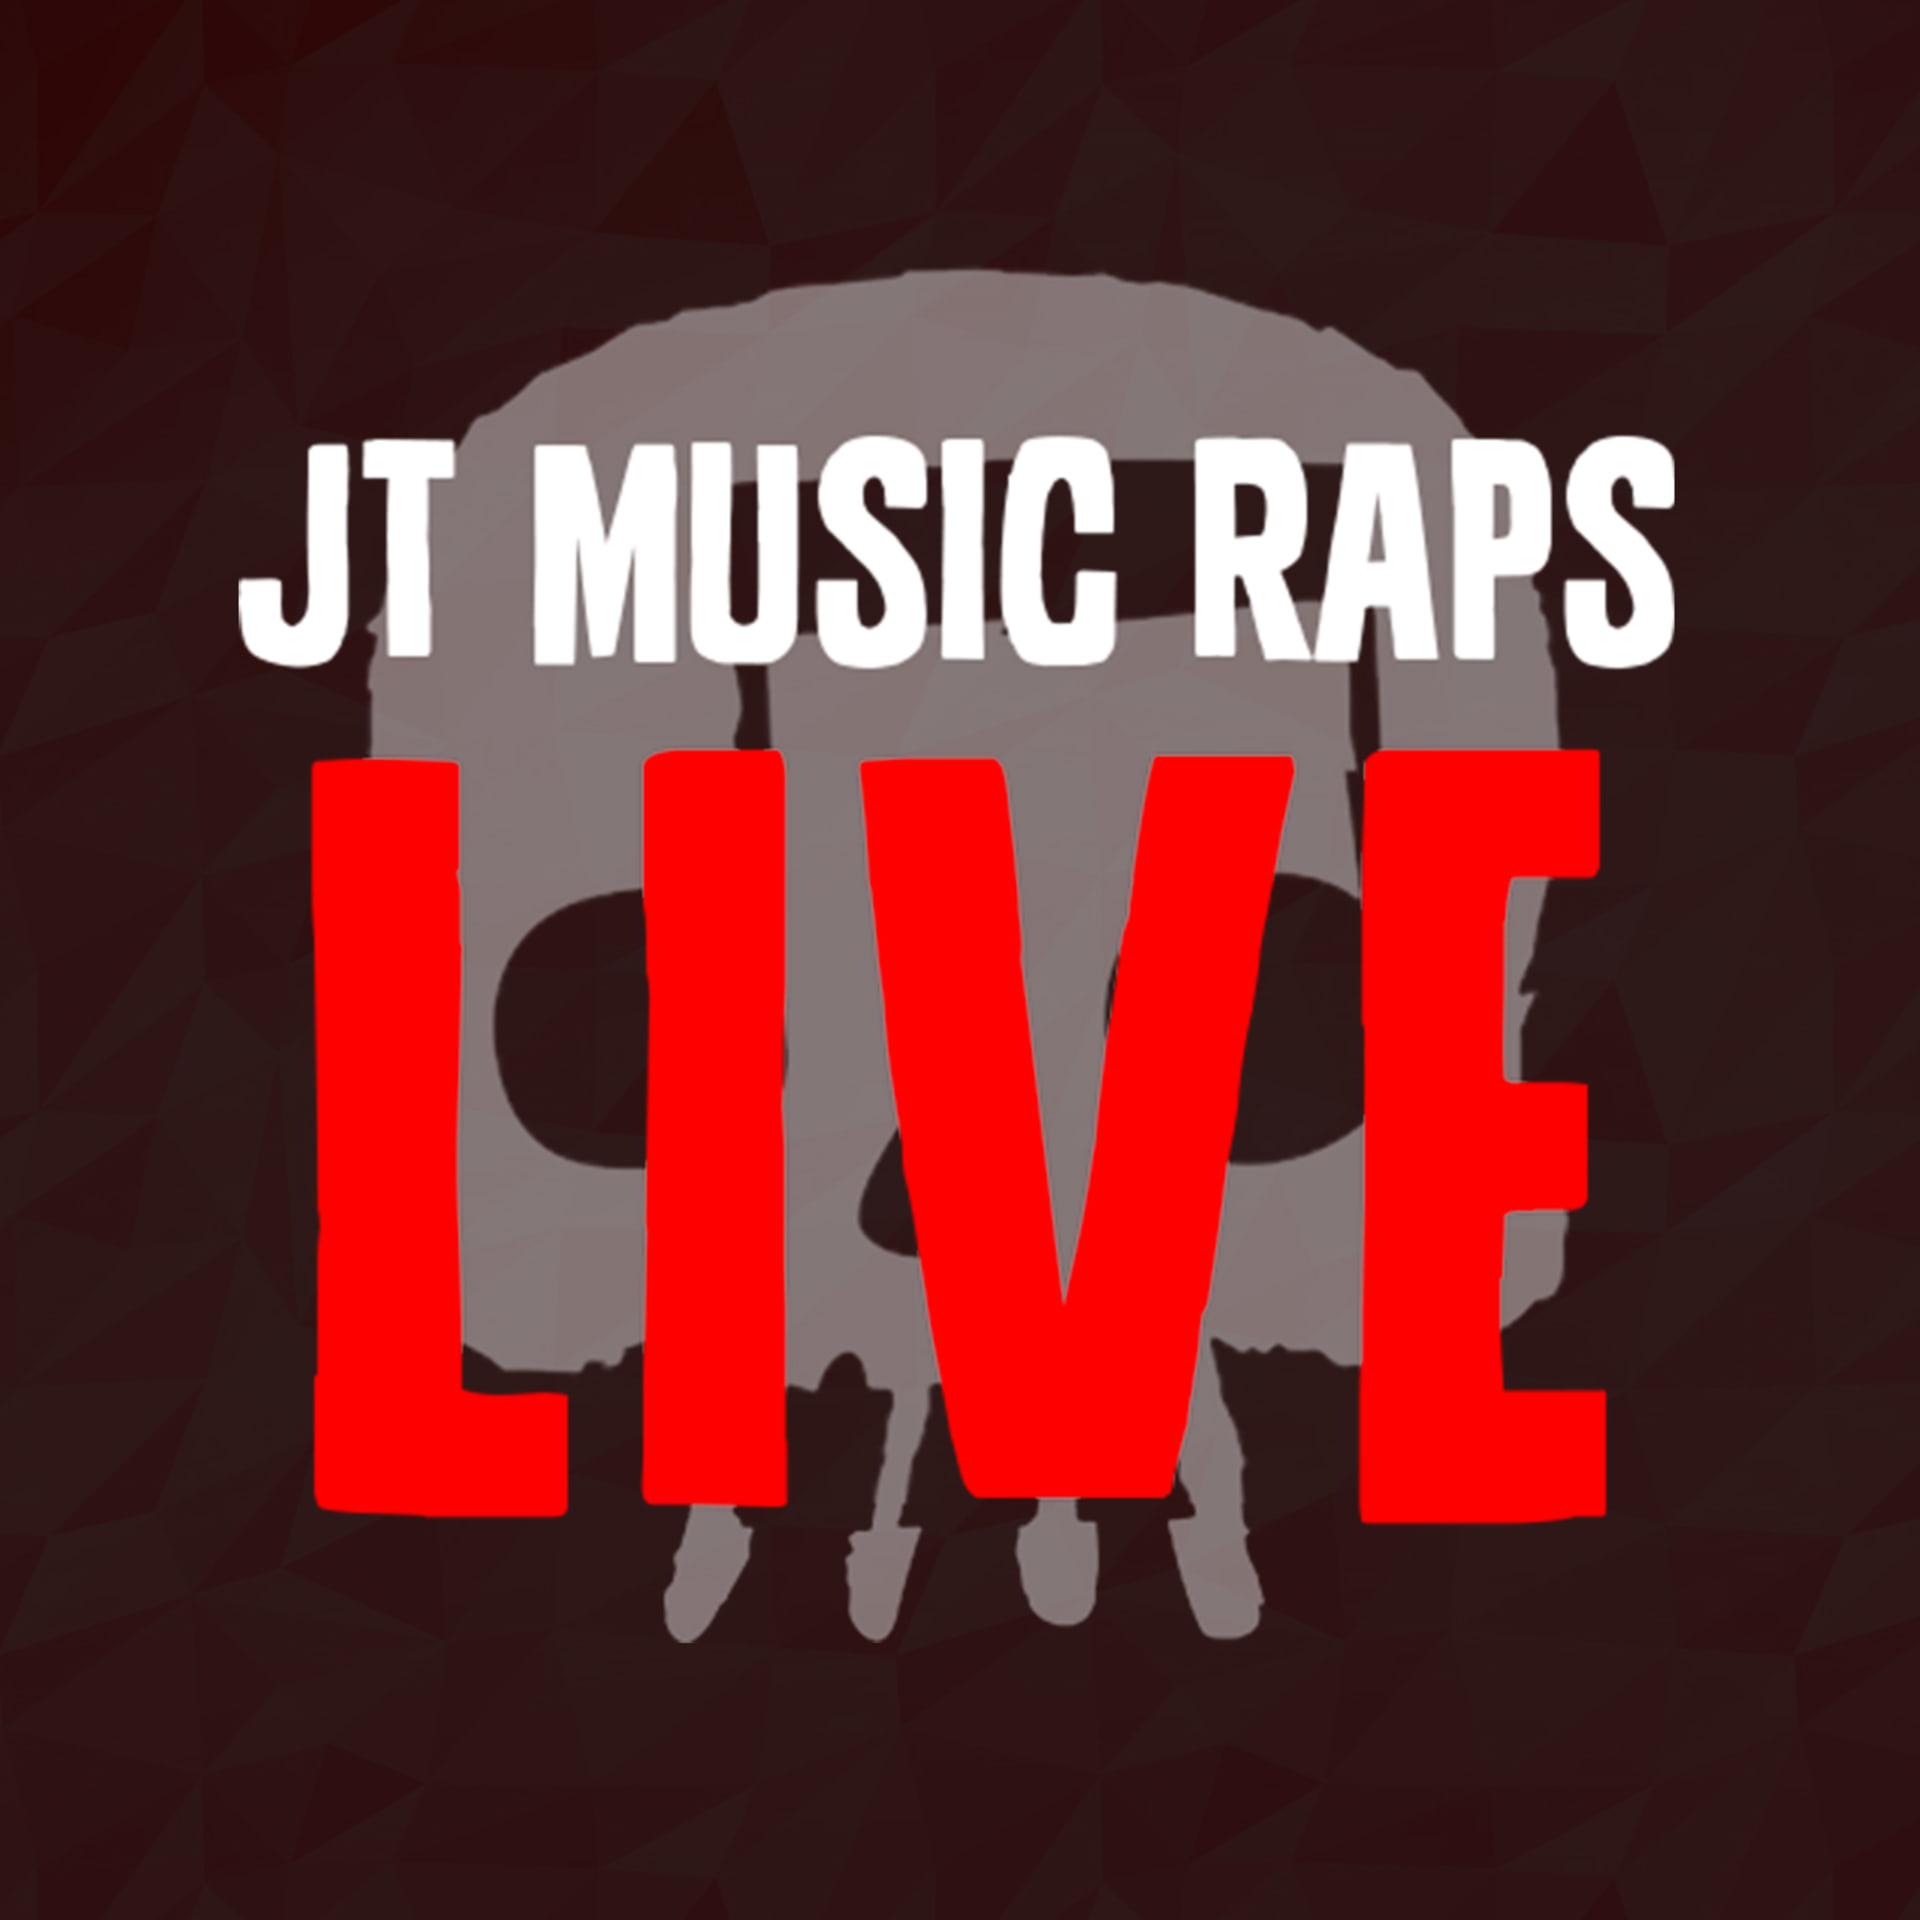 Series JT Music Raps LIVE - Rooster Teeth